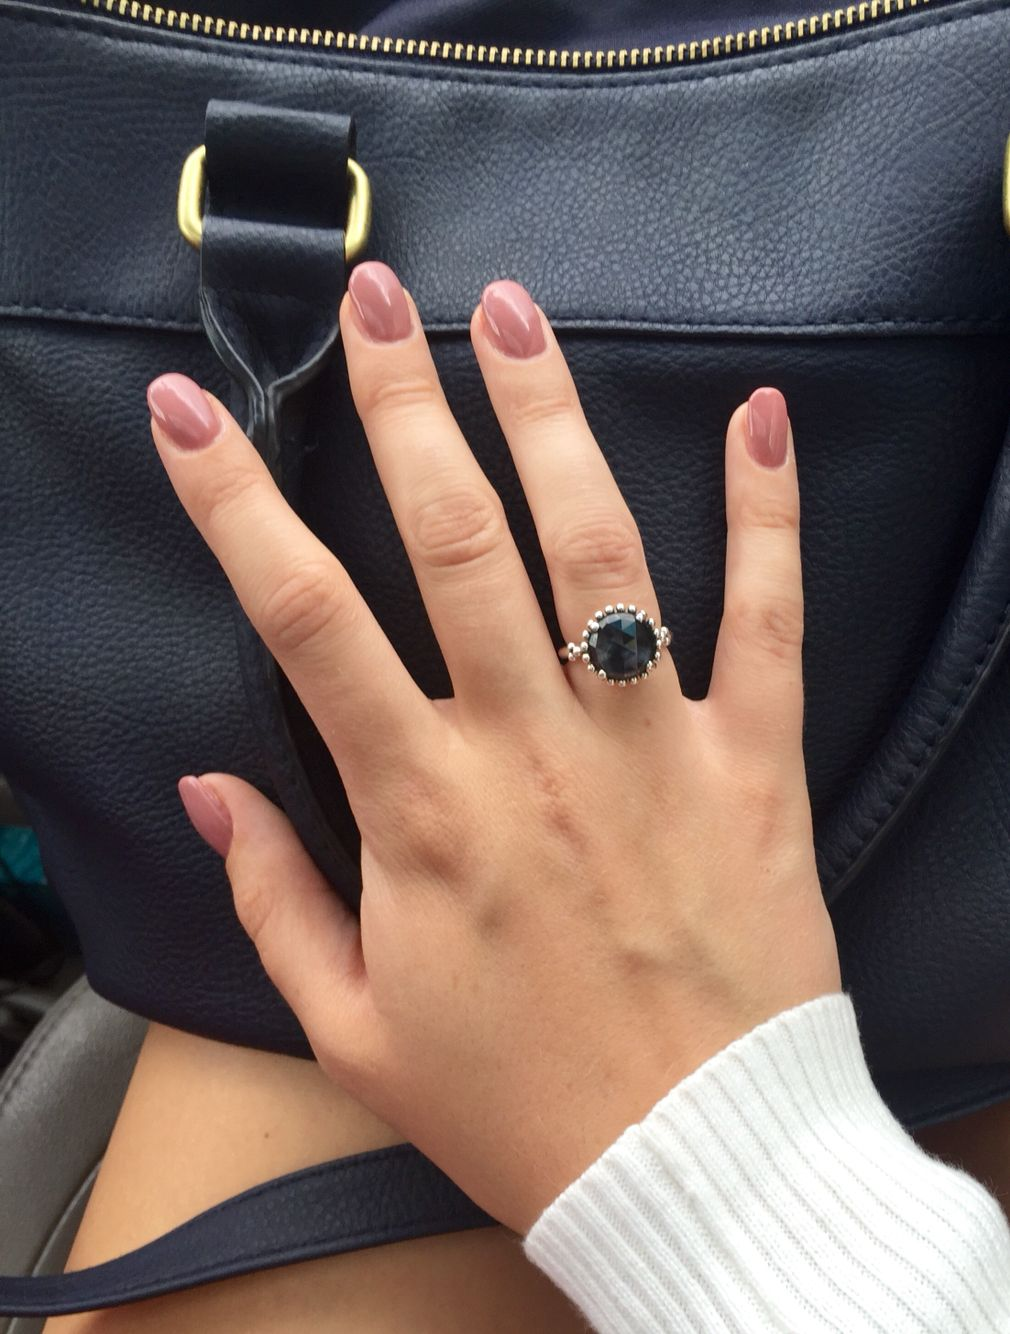 Oval nails, pandora ring, navy blue bag. Love this look, it's so classy.